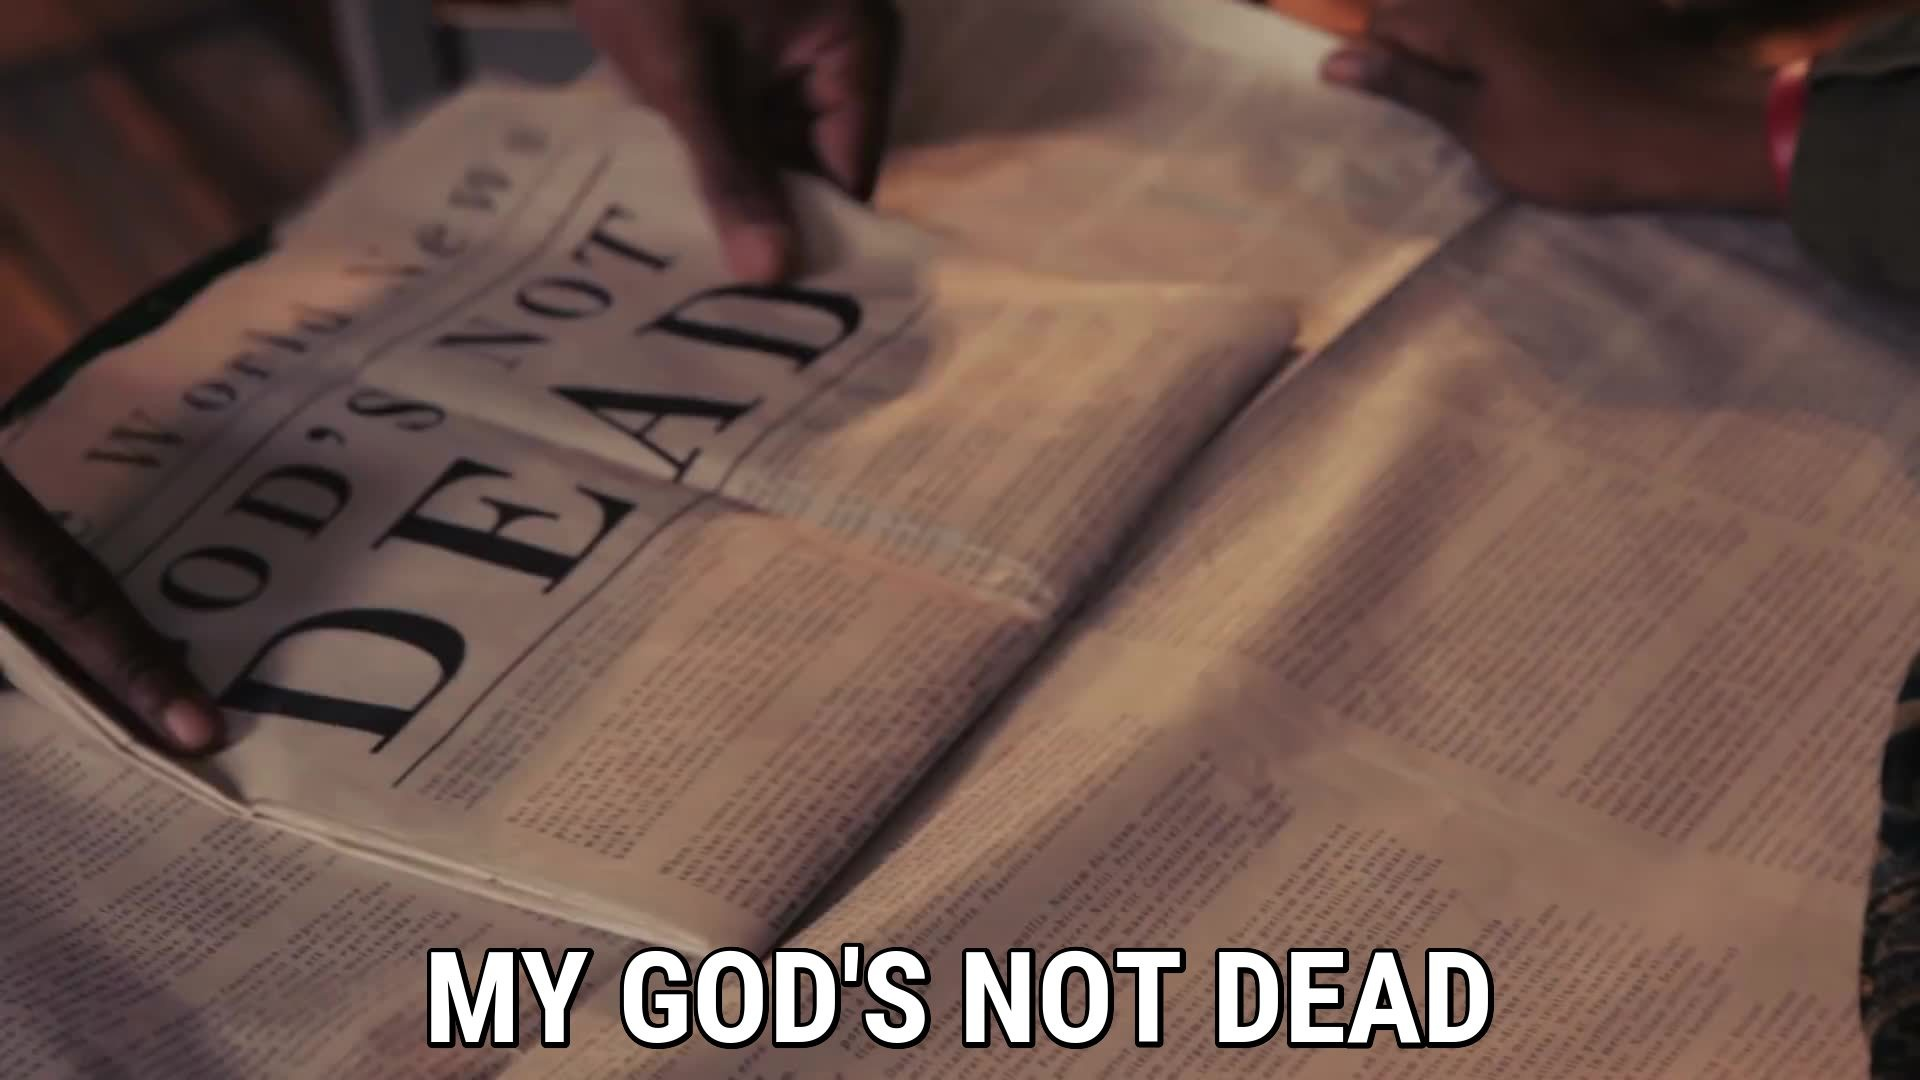 1920x1080 My God's not dead